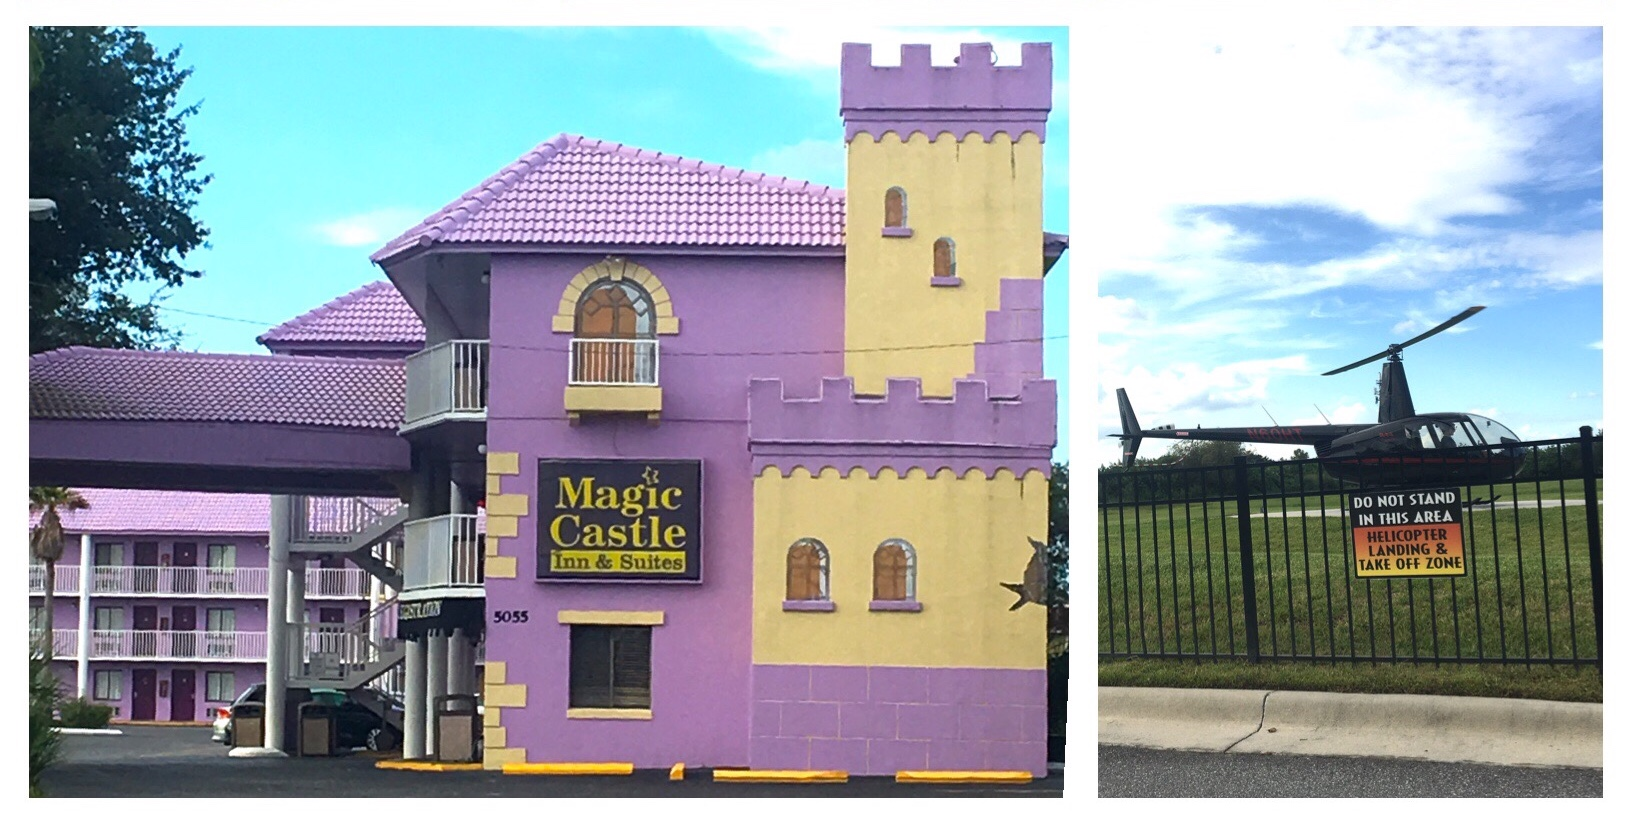 The Magic Castle Inn and Suites and helicopter tour as seen in The Florida Project.